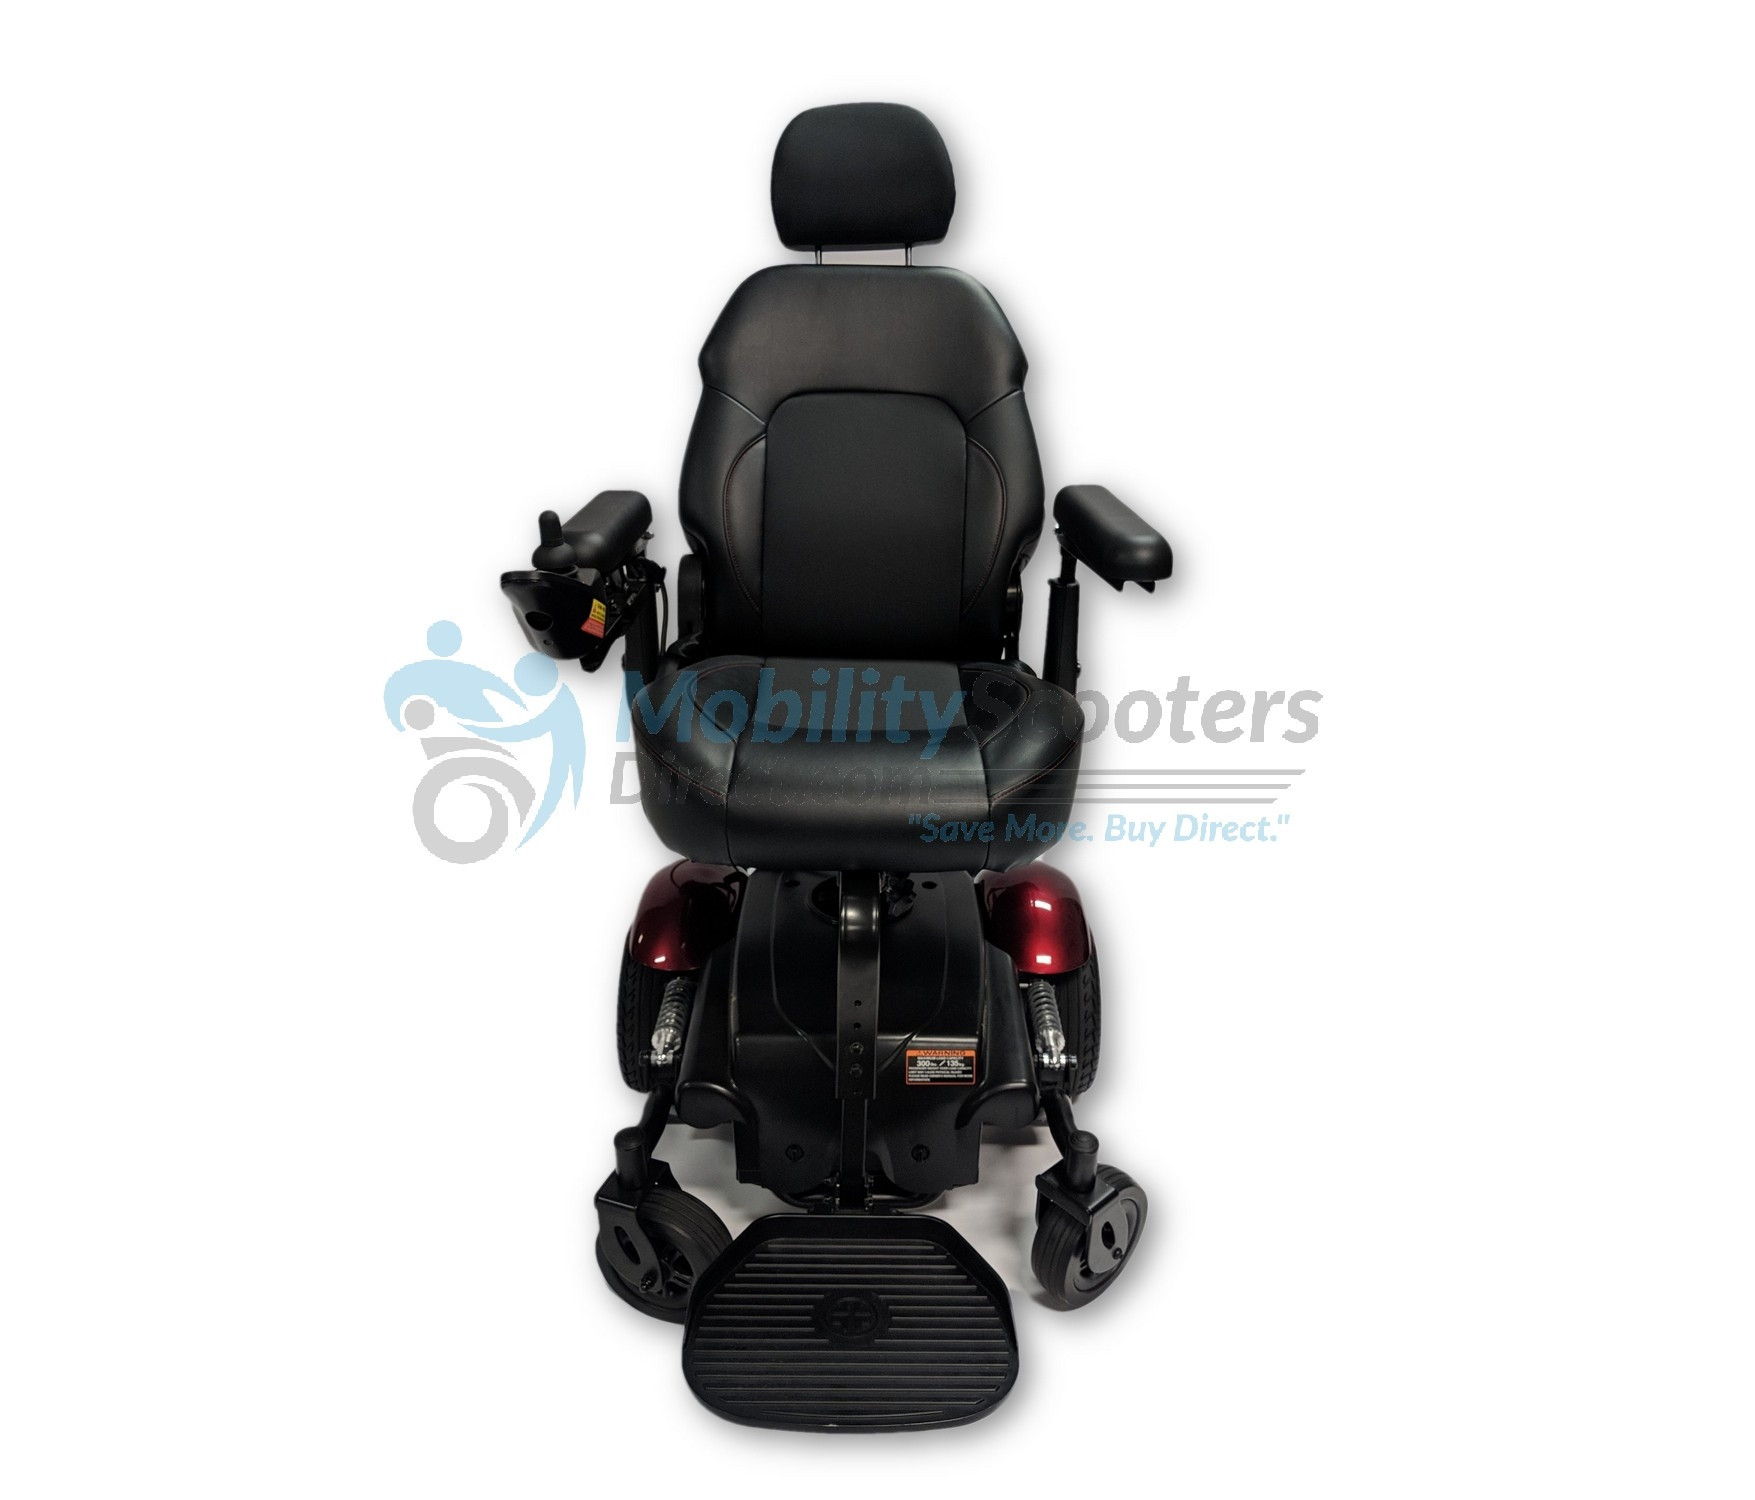 merits power chair cesca replacement seats uk vision sport wheelchair for sale lowest prices